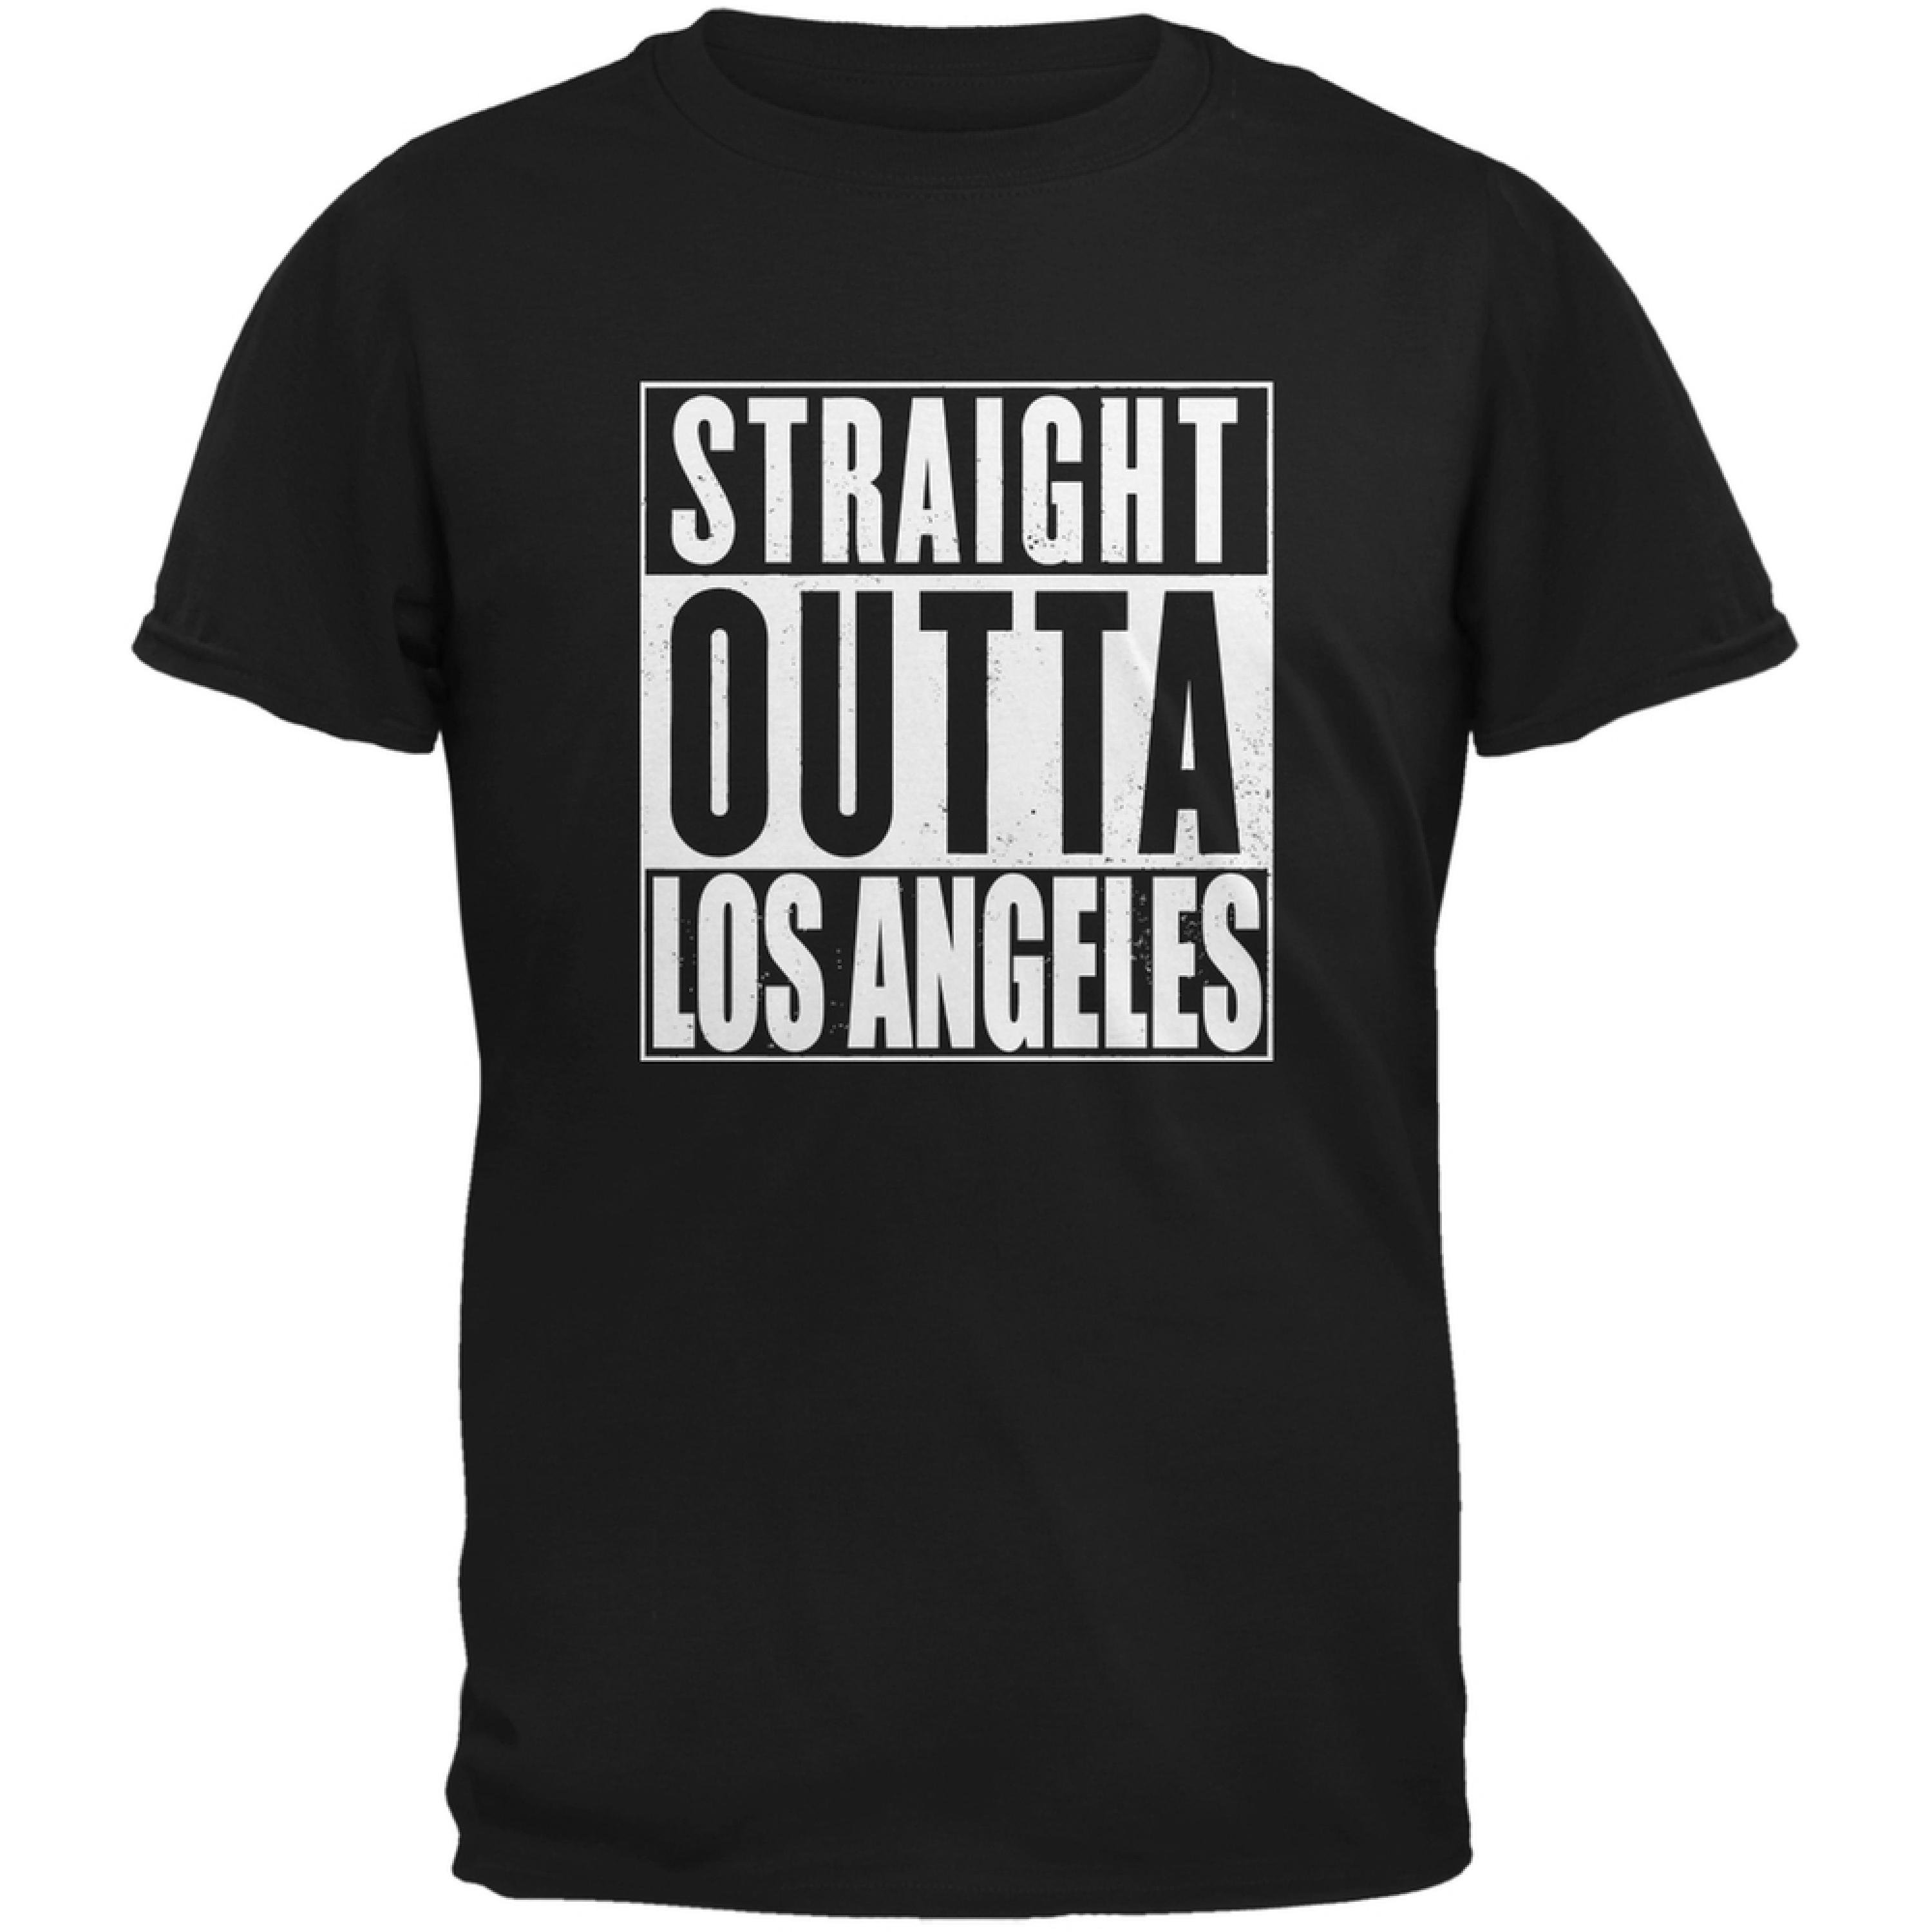 Straight Outta Los Angeles Black Adult T-Shirt